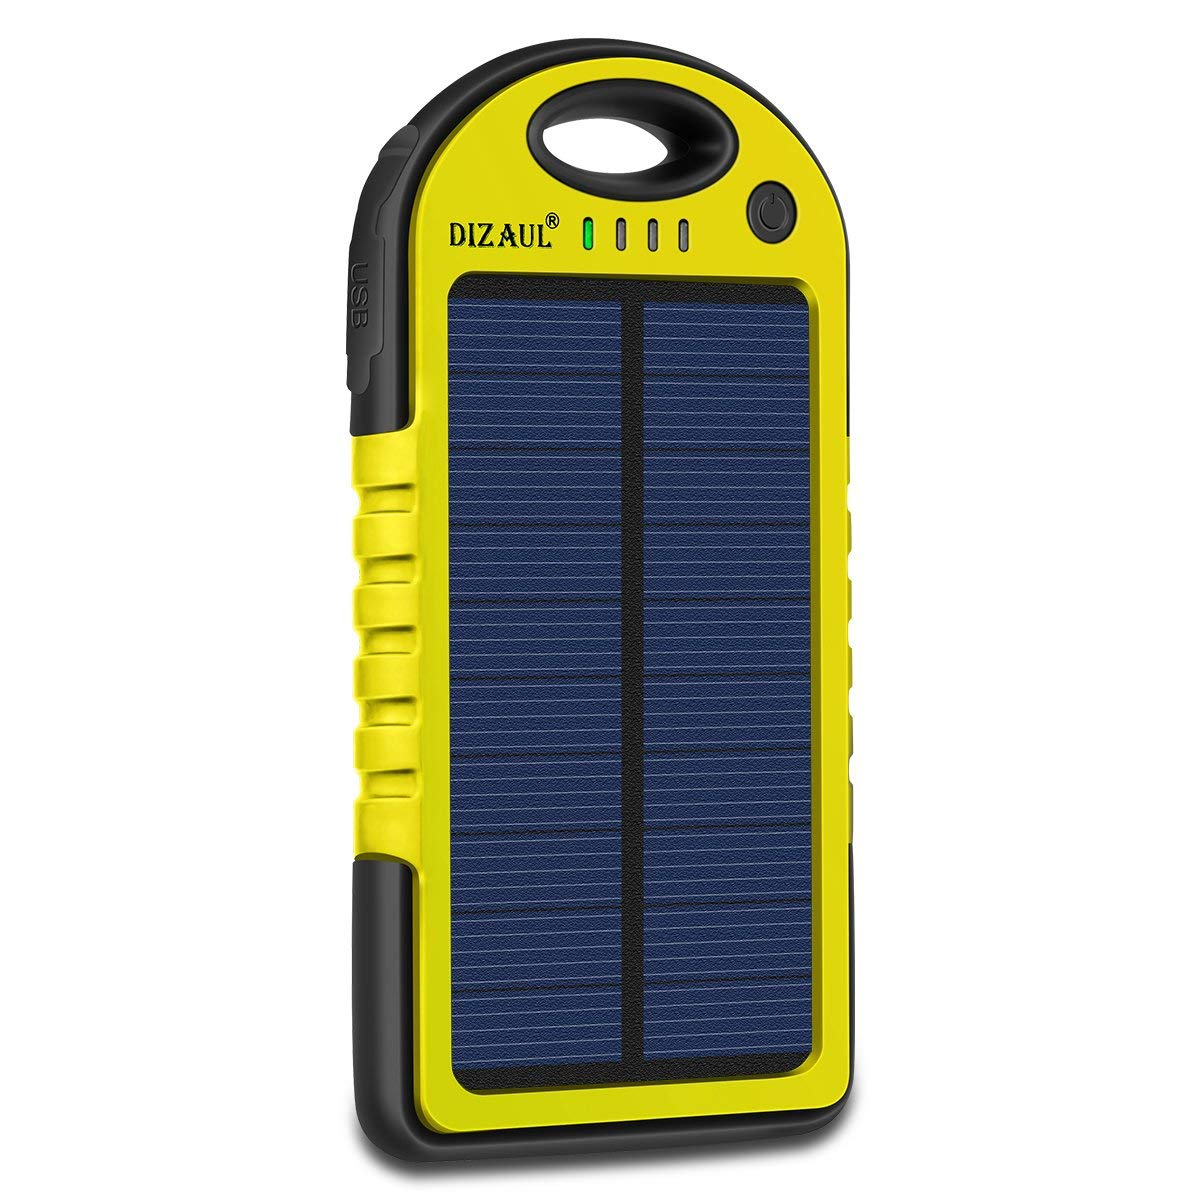 Solar Charger, Dizaul 5000mAh Portable Solar Power Bank Waterproof/Shockproof/Dustproof Dual USB Battery Bank for Cell Phone, Samsung, Android Phones, Windows Phones, GoPro Camera, GPS and More (Yellow)